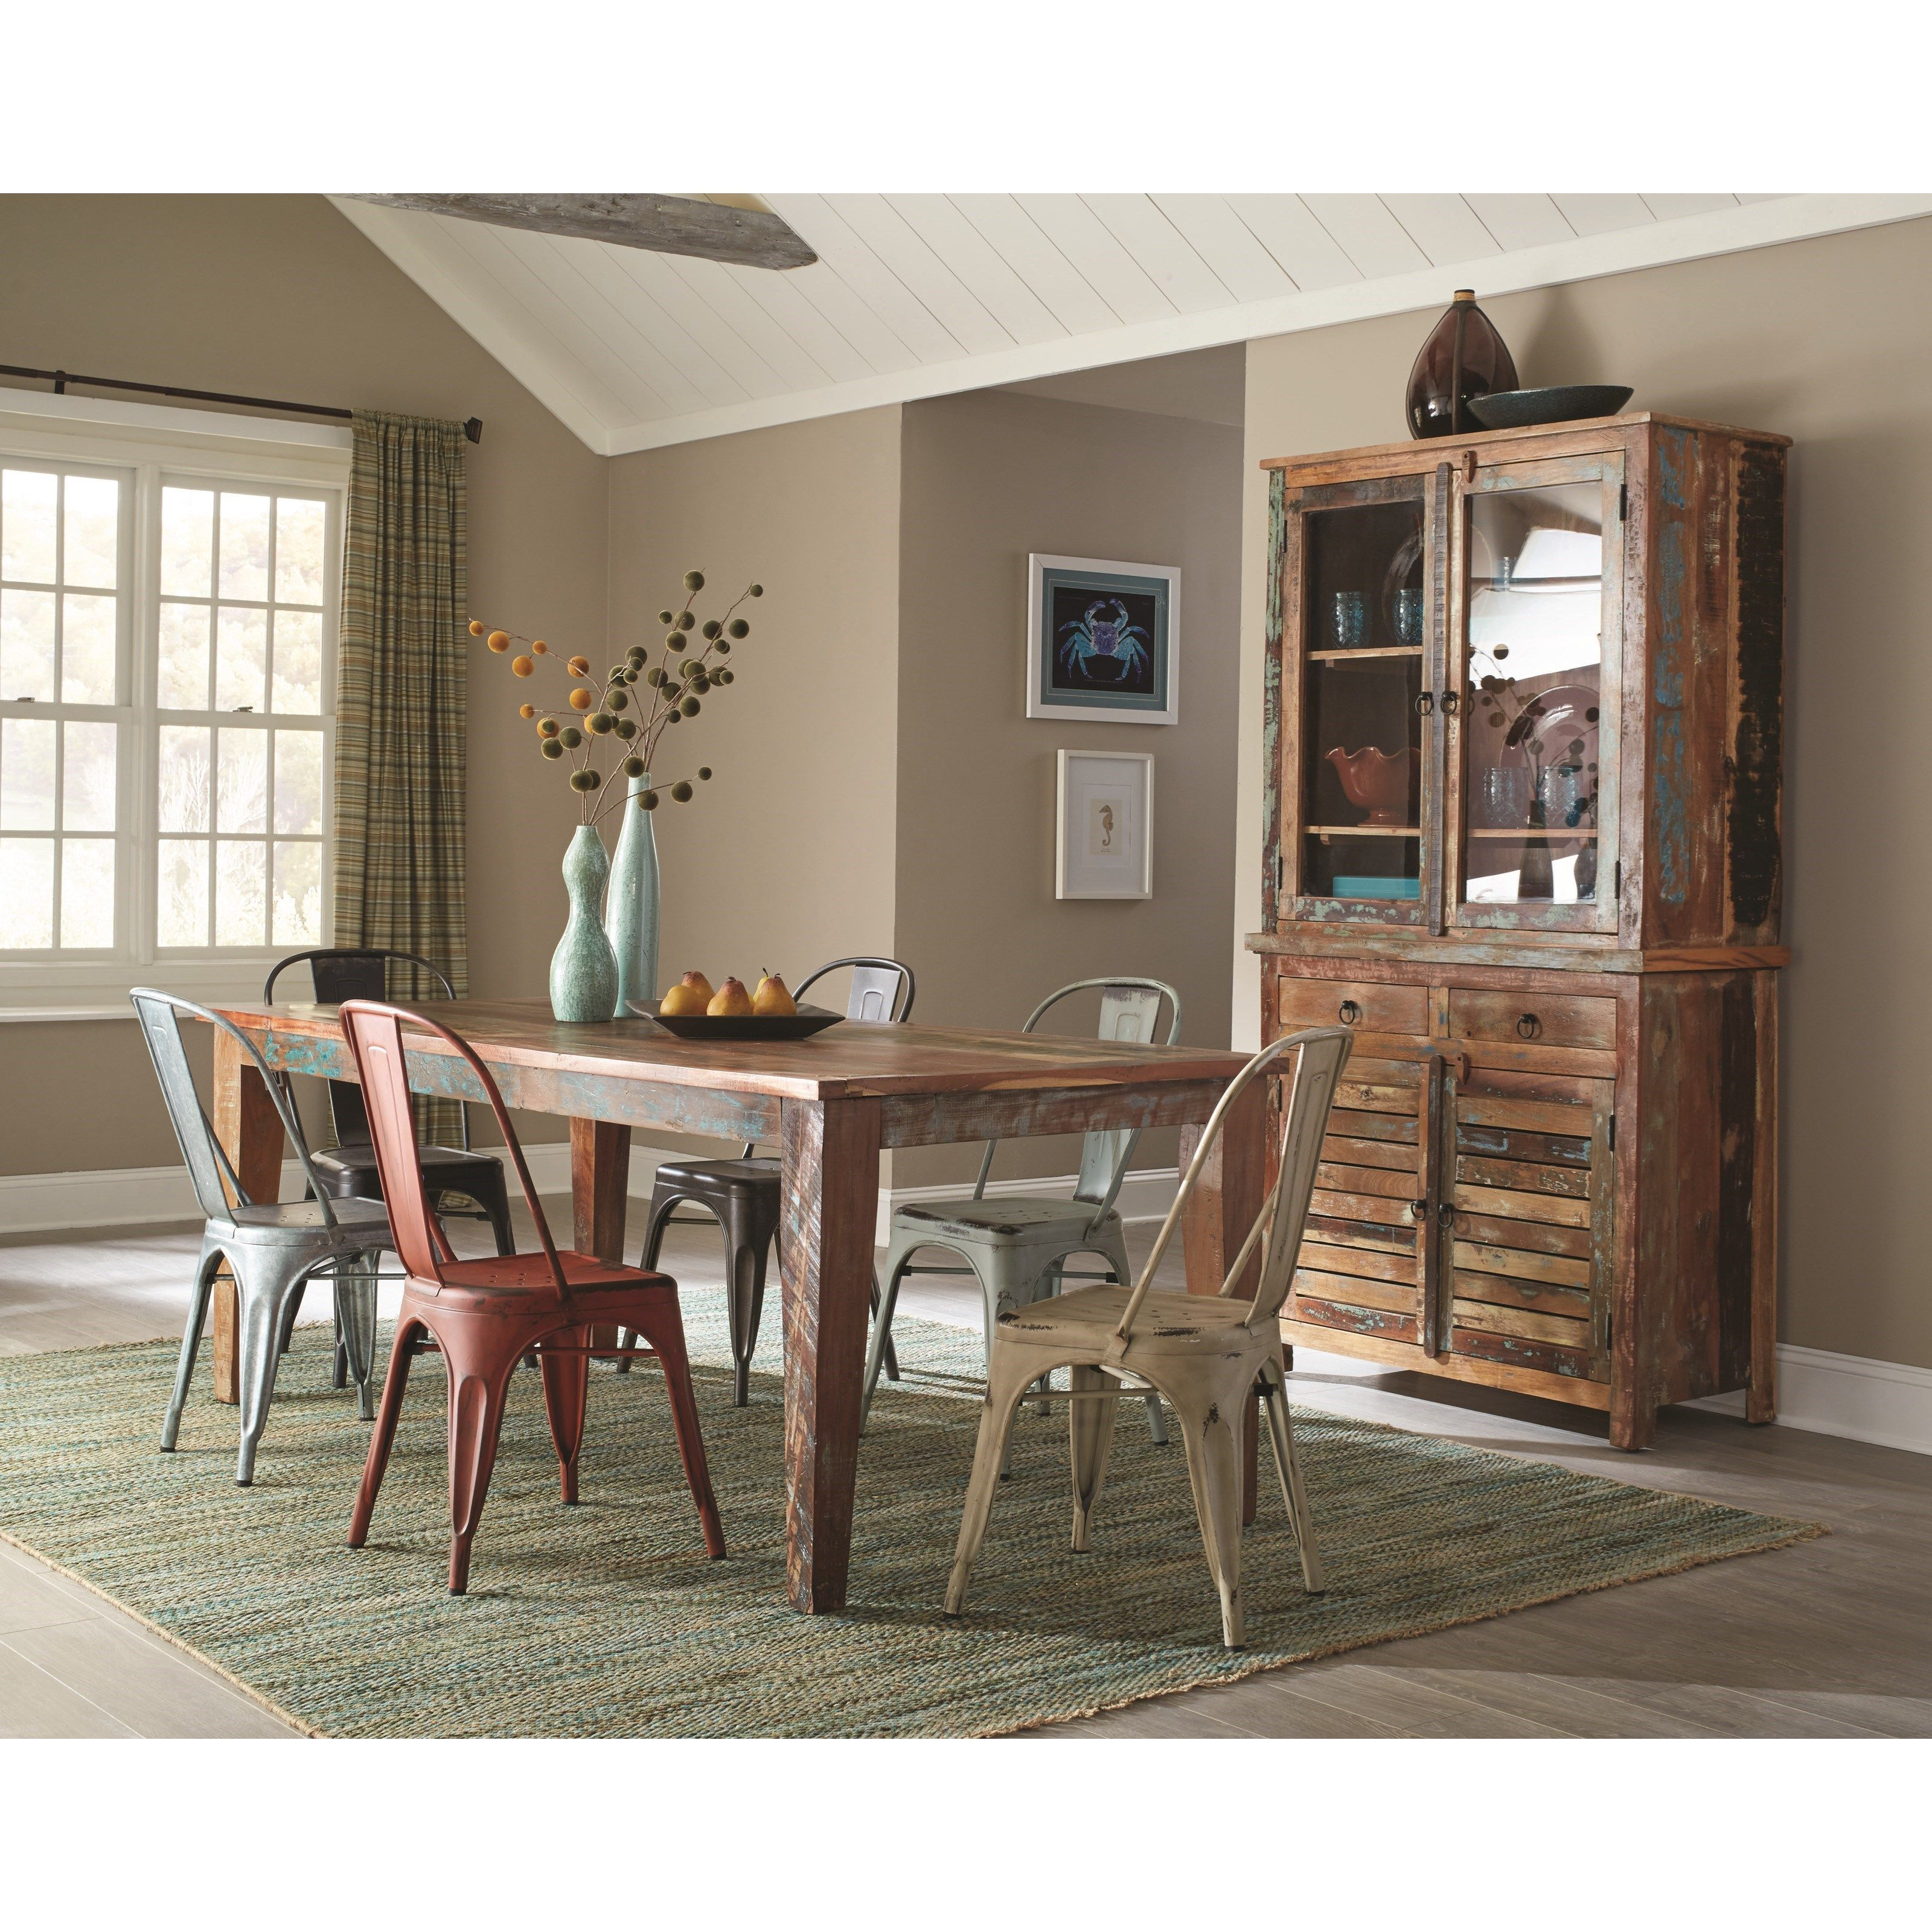 Small Casual Dining Room Ideas: Coaster Keller Casual Dining Room Group